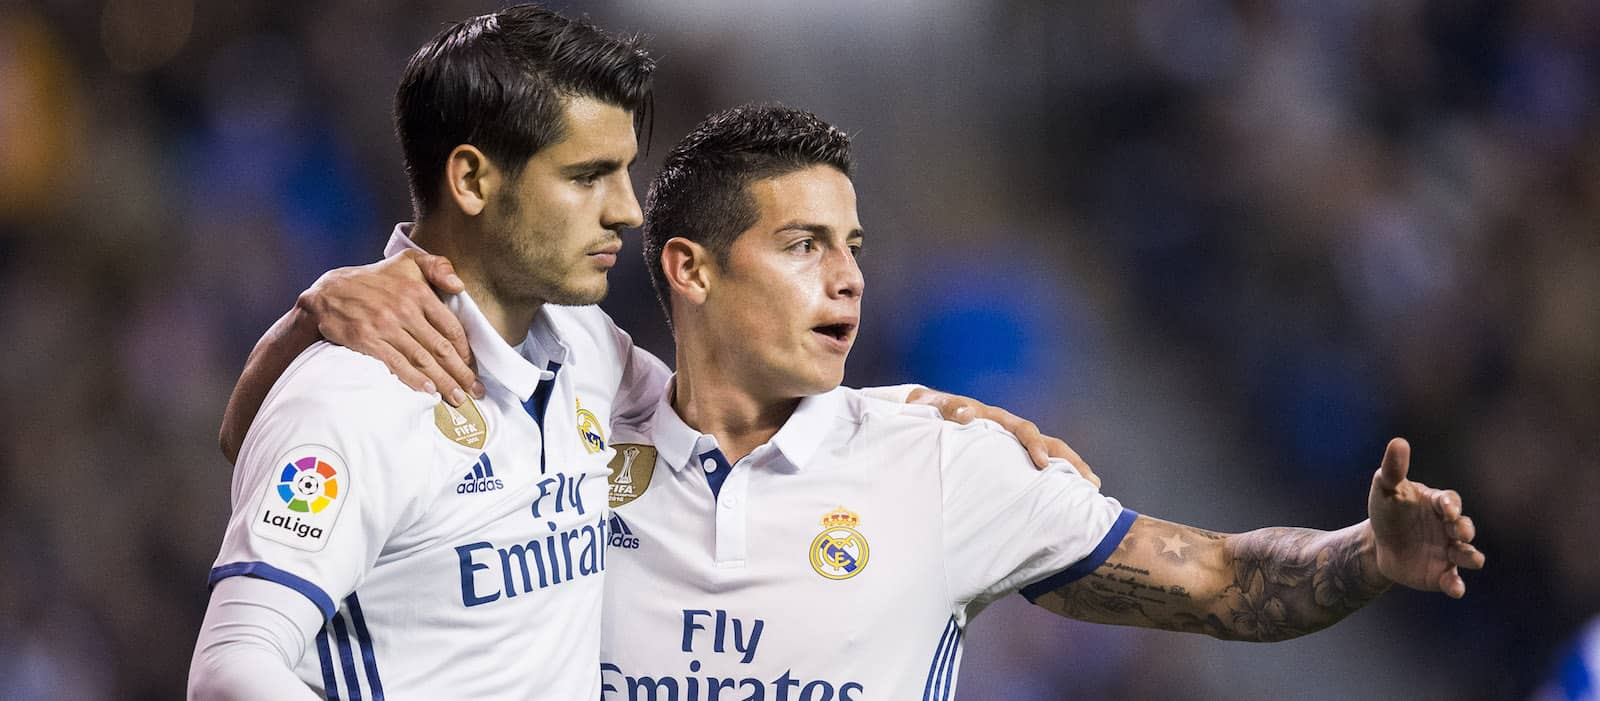 Alvaro Morata to Manchester United for £60m, James Rodriguez too? | Transfer news